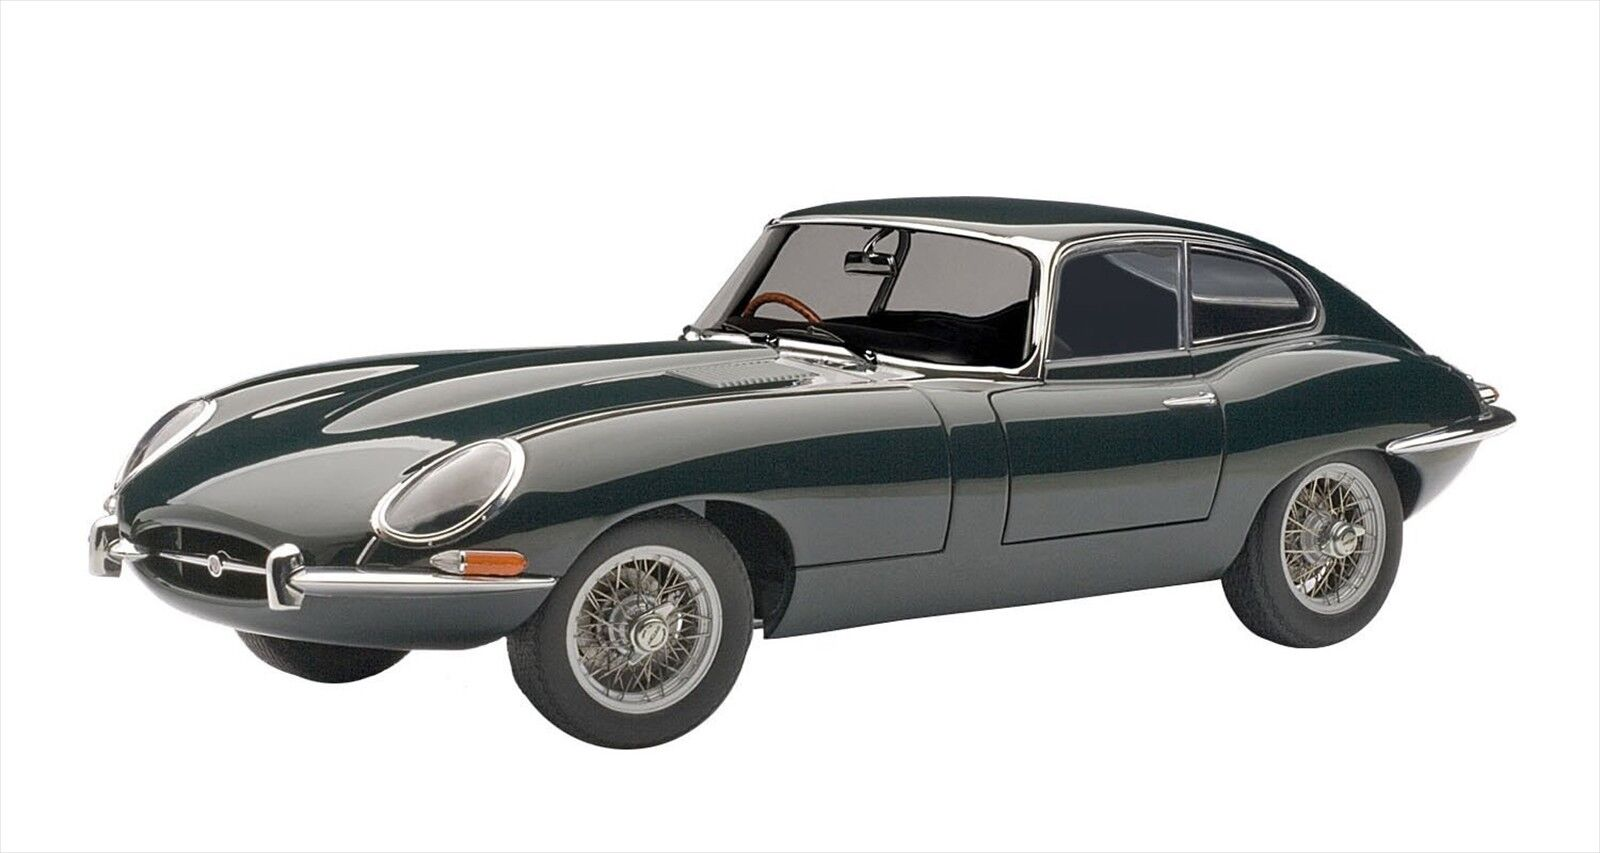 1961 Jaguar E-Type 3.8 Coupe Series 1/Racing Green 1:18 AUTOart 73612 NEW